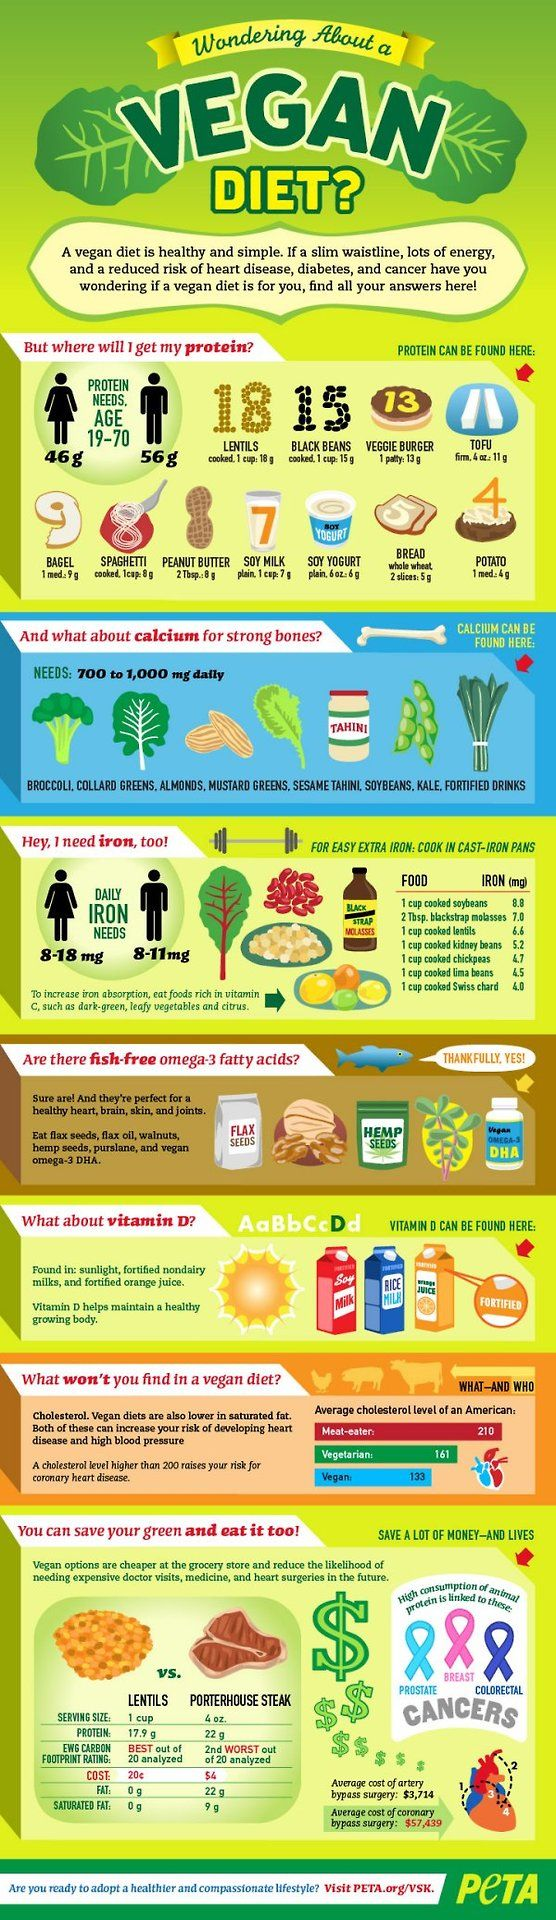 I love this. People seem to think it is more important to have protein than it is to fuel your body with anything else. Like vitamins and minerals!